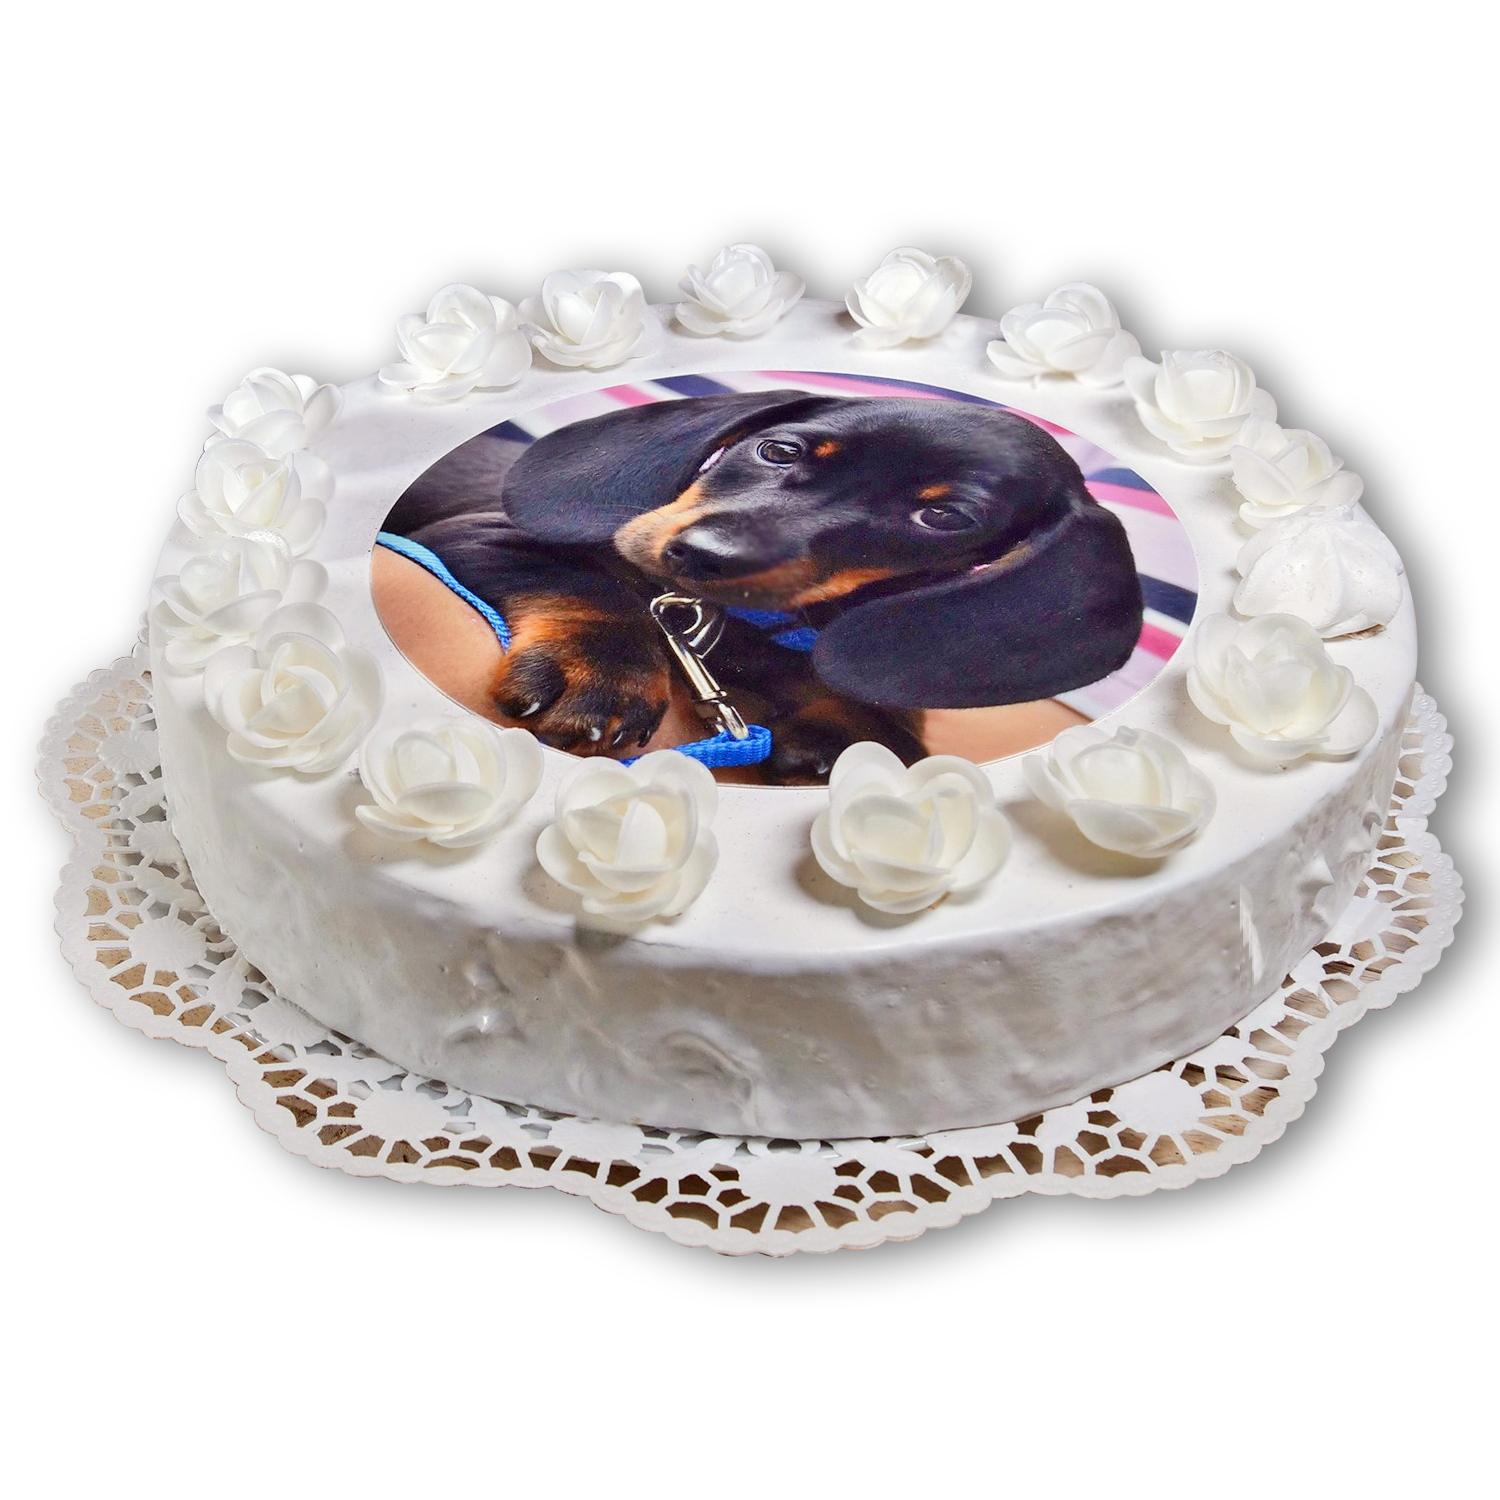 Edible Photo Topper, circular, 20cm Diameter